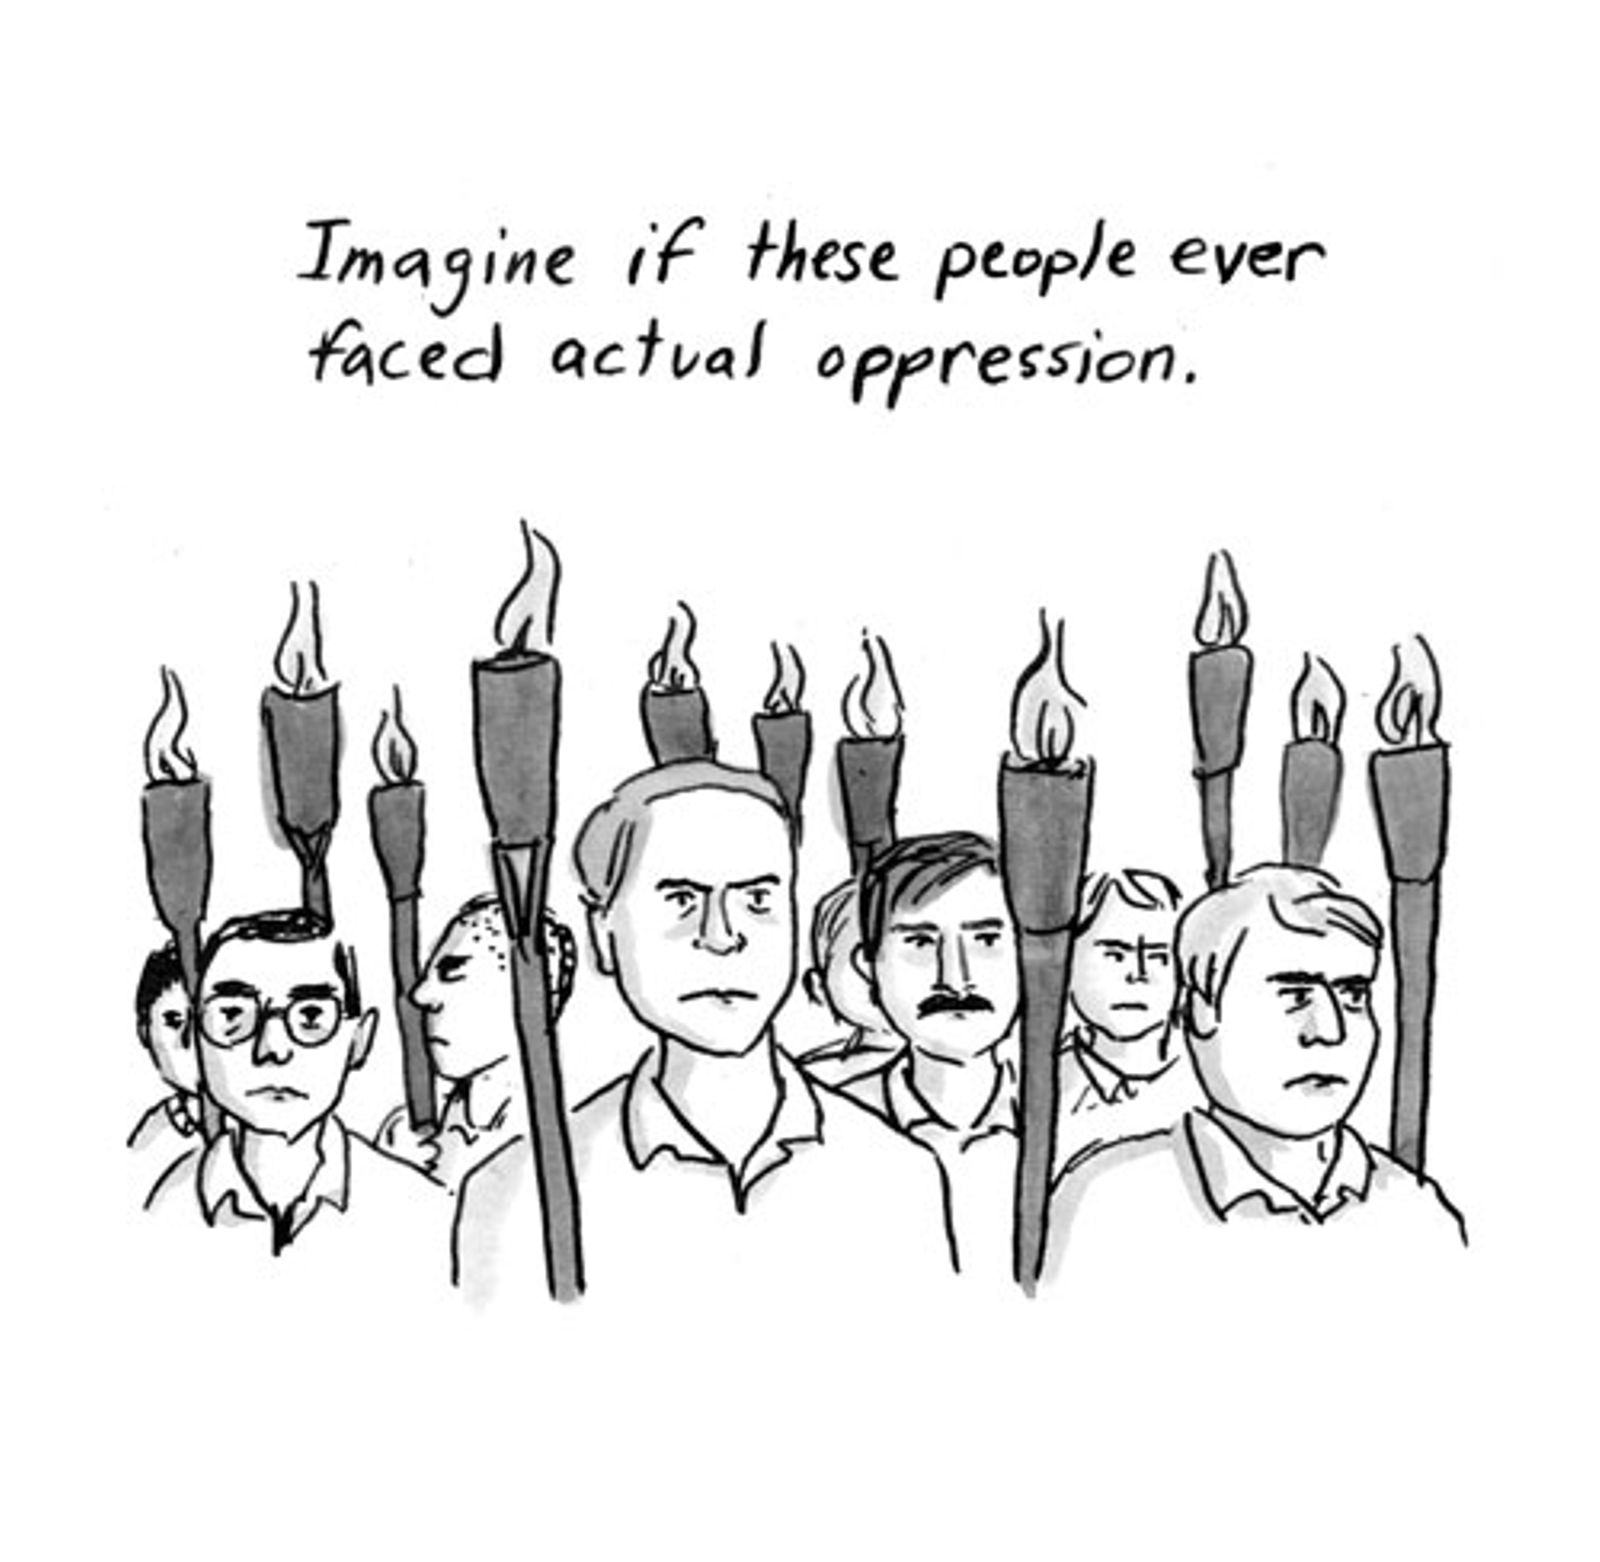 White people holding torches below the caption